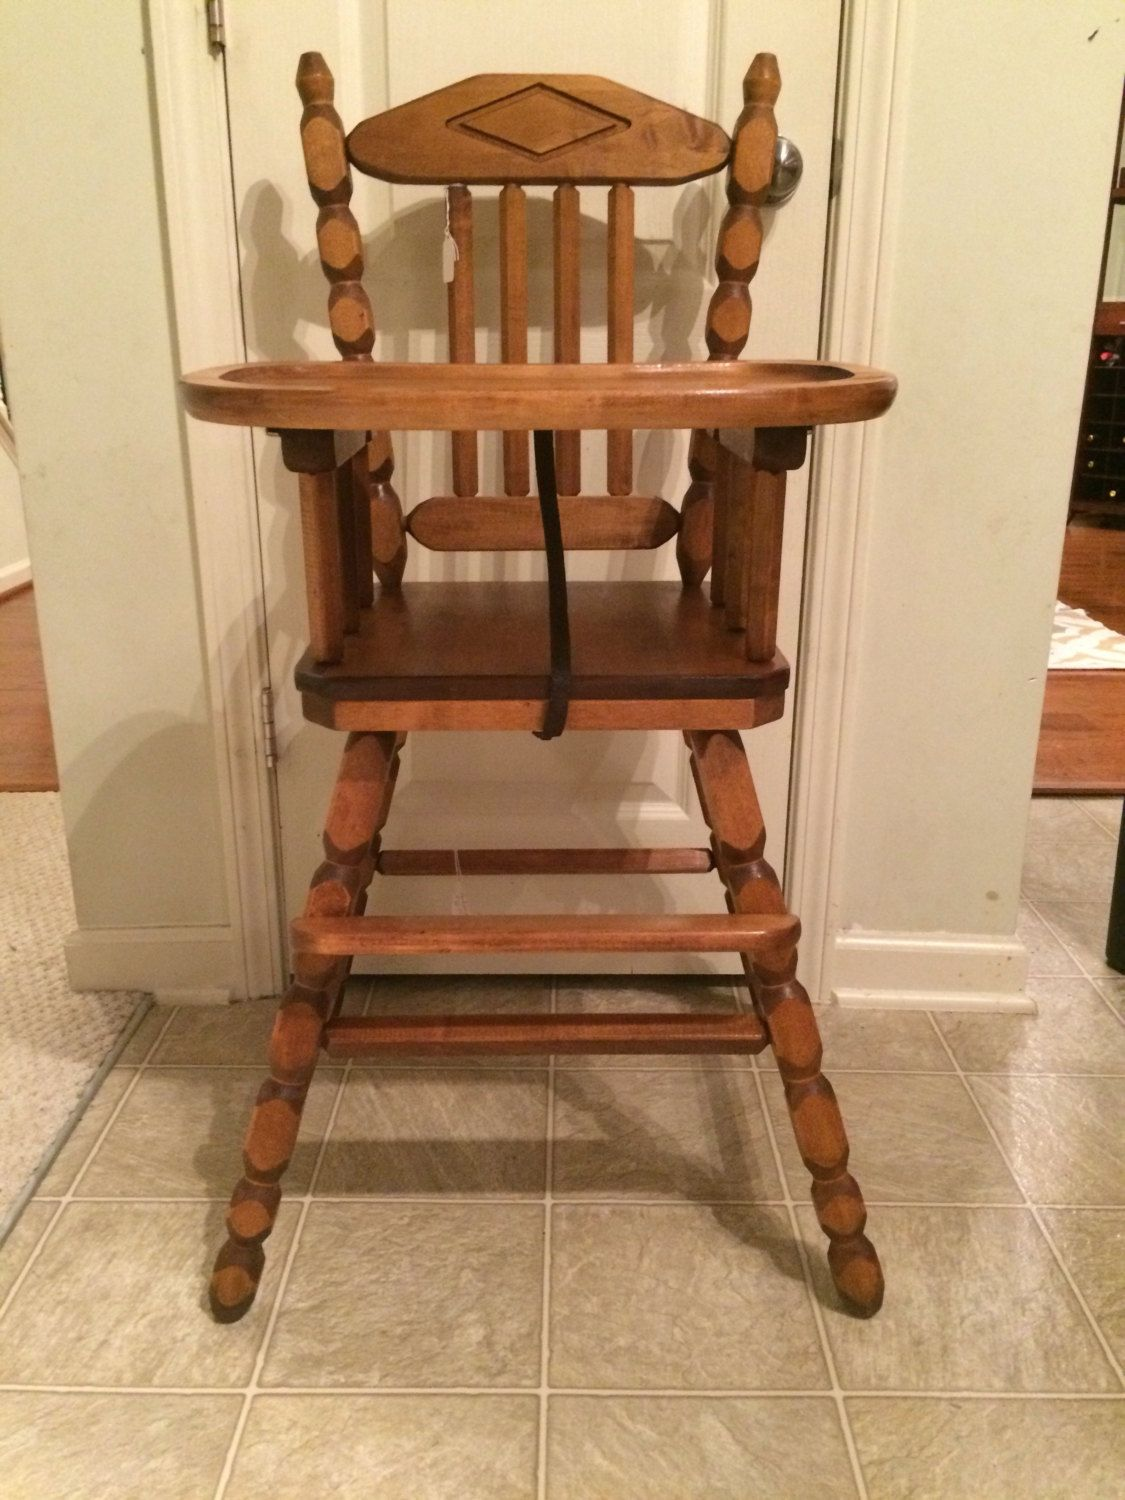 Vintage Wooden High Chair, Jenny Lind, Antique High Chair